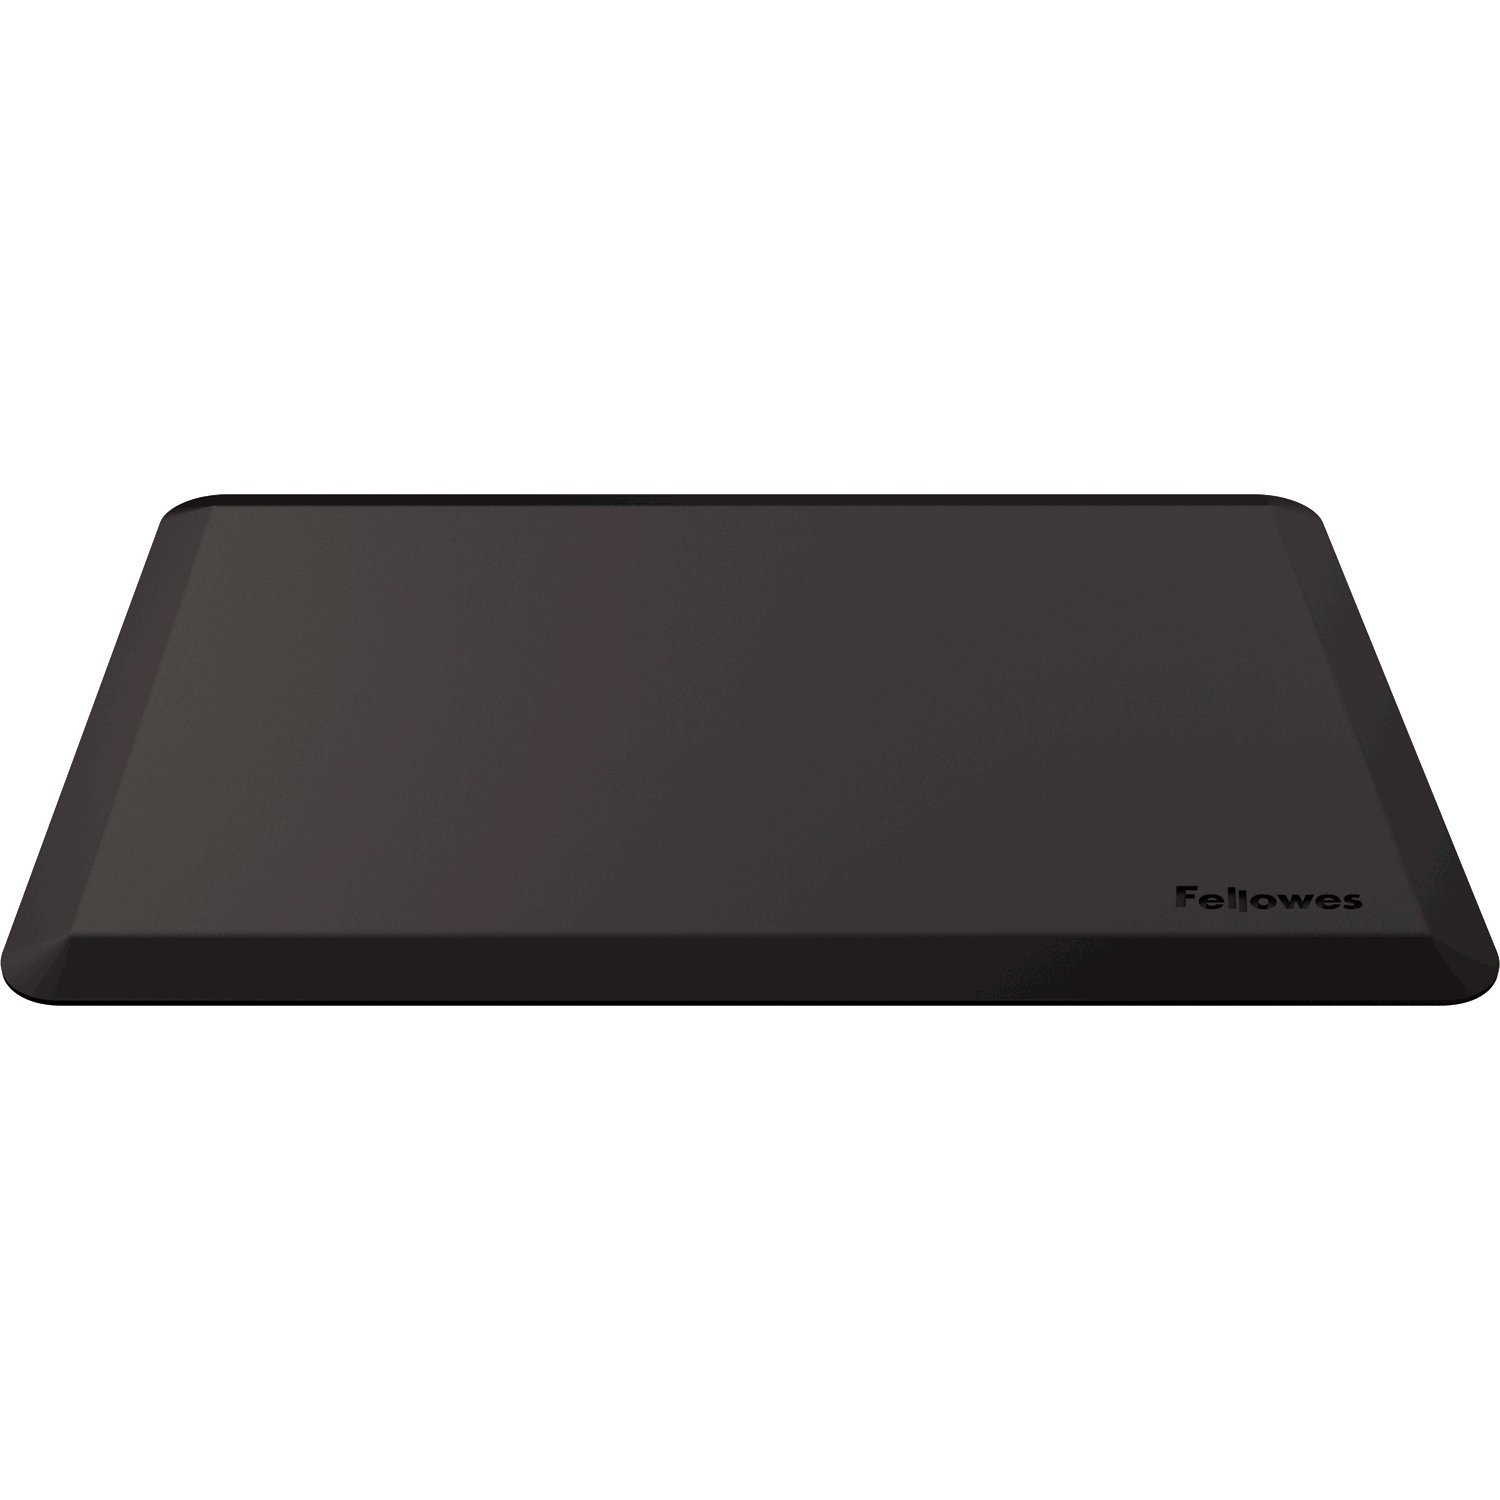 Fellowes - Alfombra ergonómica antifatiga, color negro product image